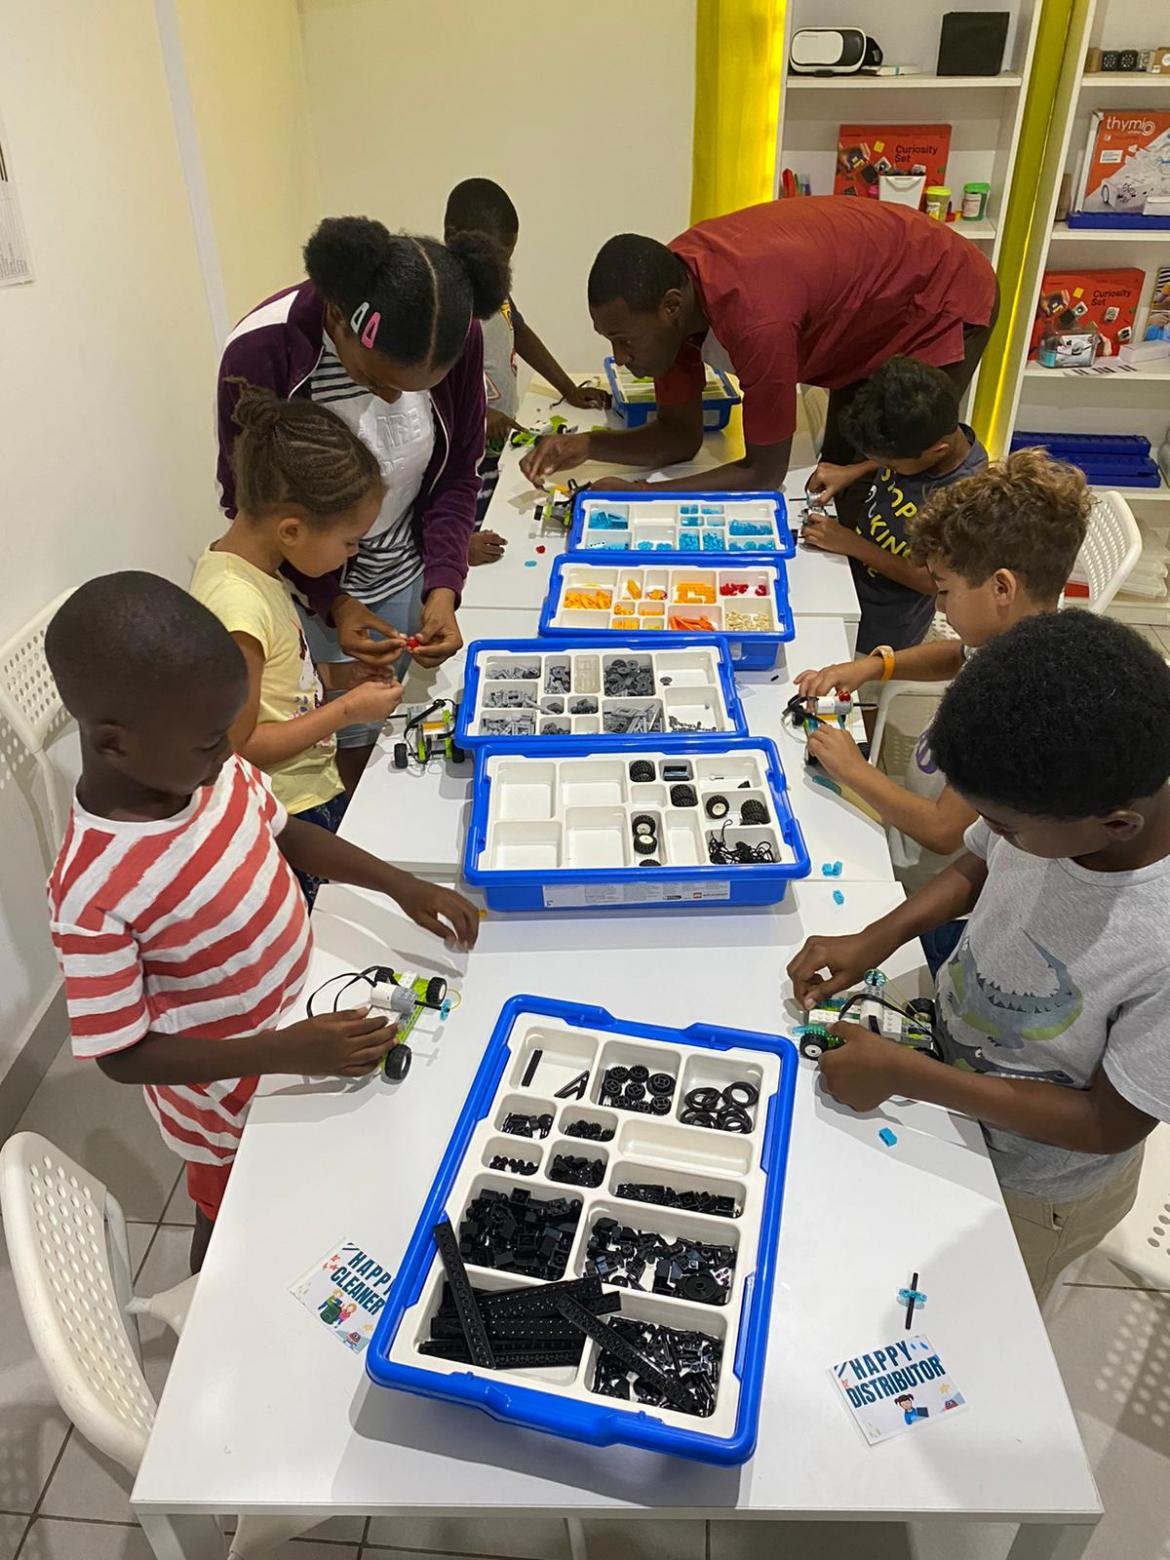 A coding and robotics class at Happy Coders Academy in Abidjan, Cote d'Ivoire. 2019.